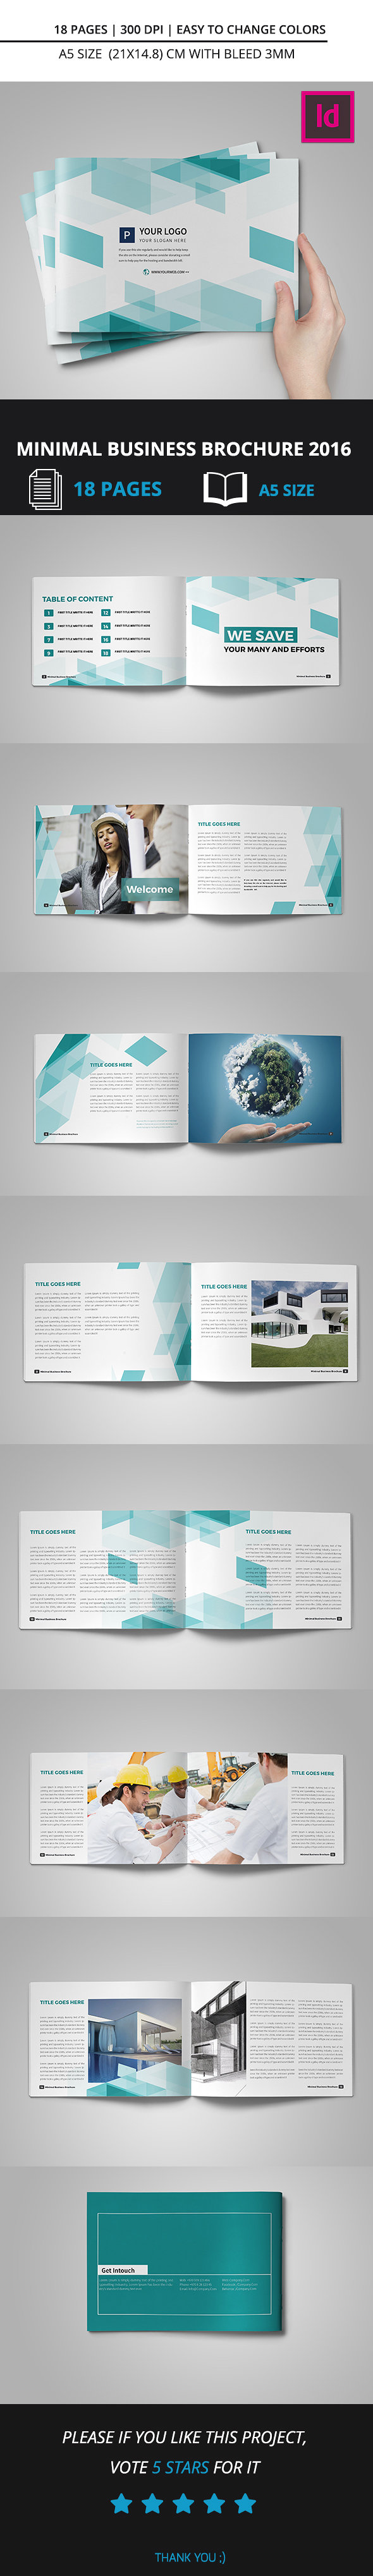 Minimal Business Brochure 2016